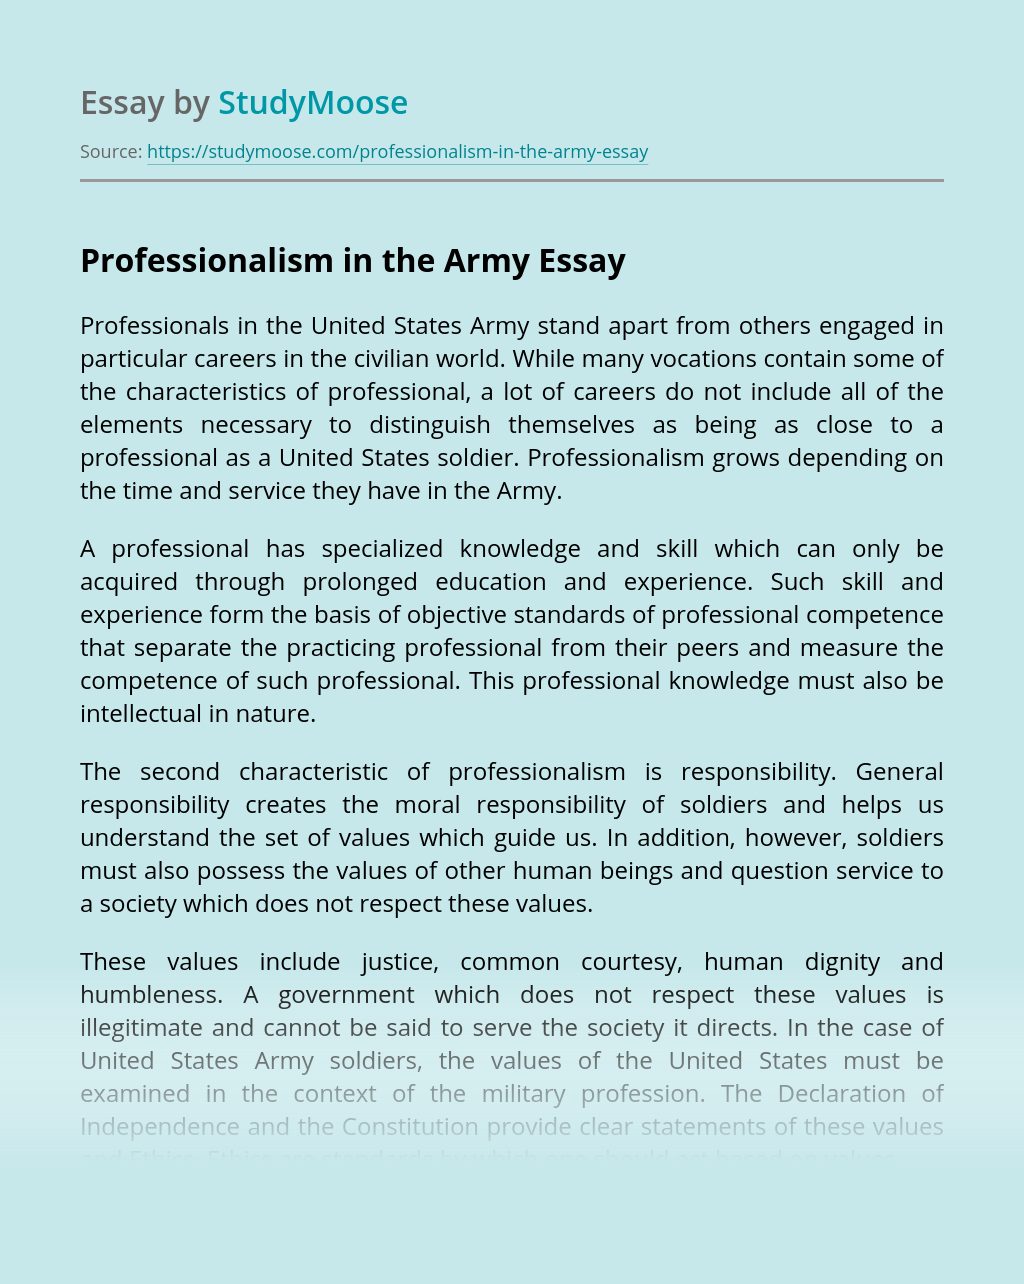 Professionalism in the Army